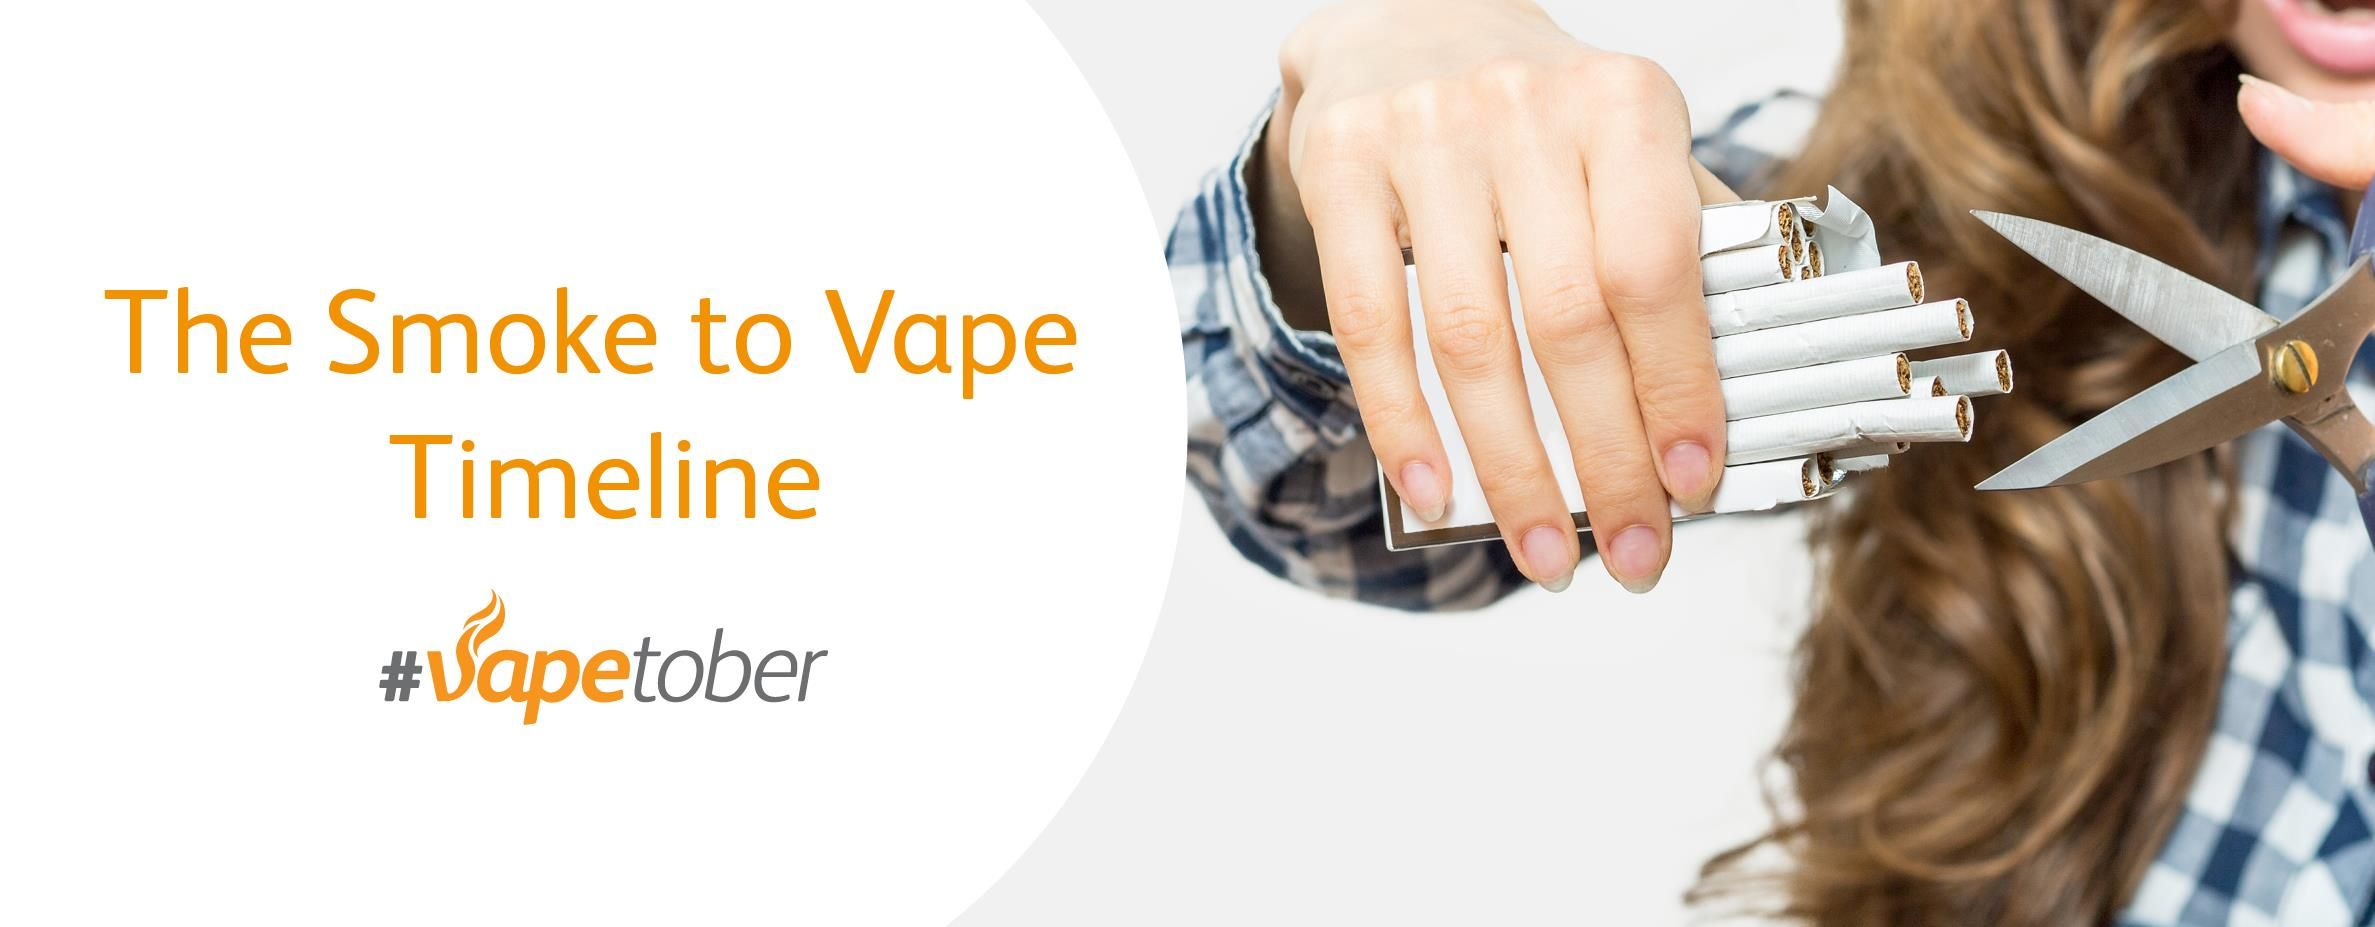 The human body is a beautiful thing; after your last cigarette, it starts to heal itself almost immediately. Let's take a little look at just how quickly switching to vaping alleviates the nasties, shall we? 🙌 💨